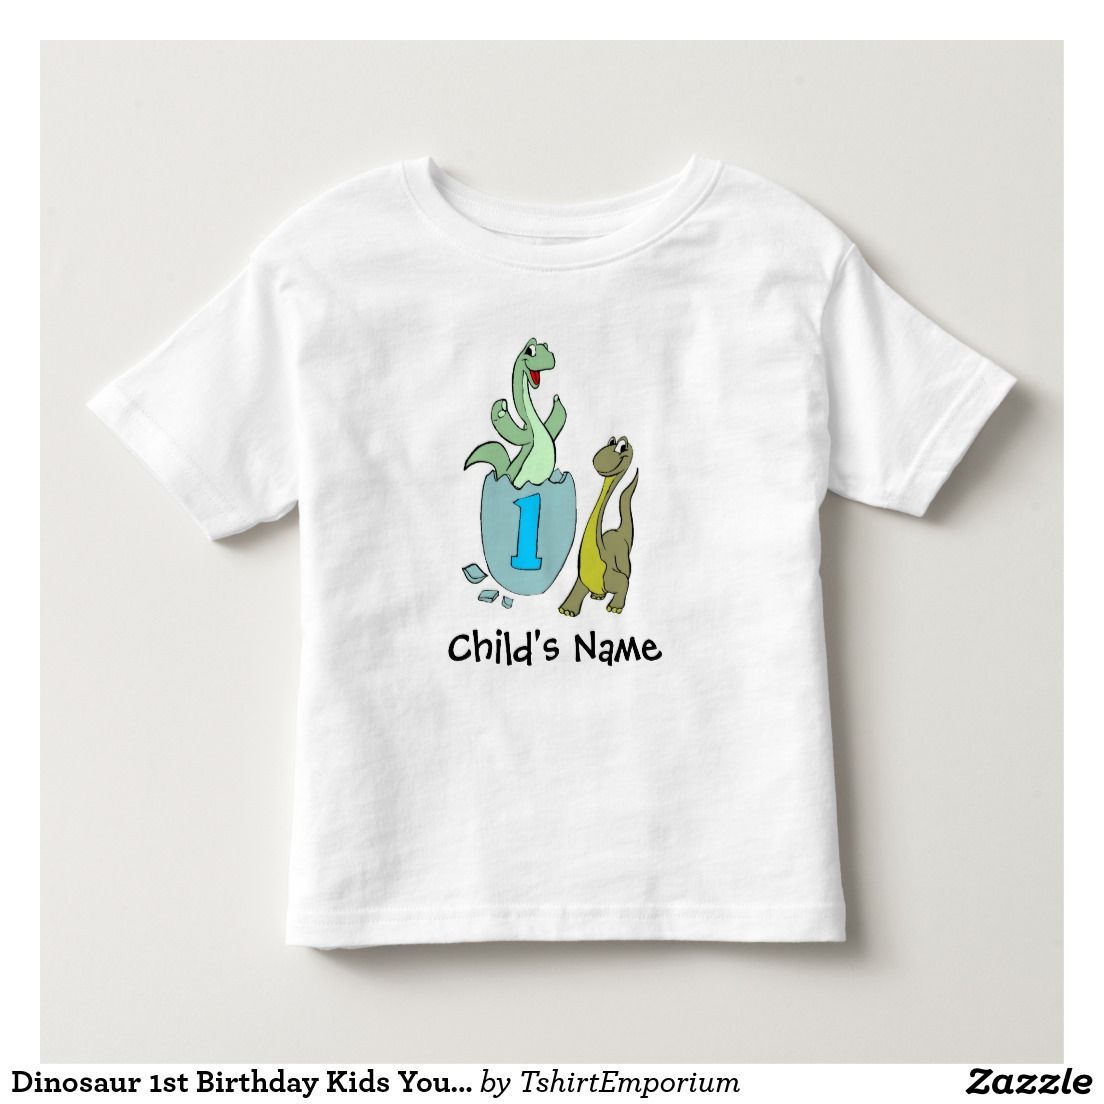 Dinosaur 1st Birthday Kids Youth Toddler Tshirt